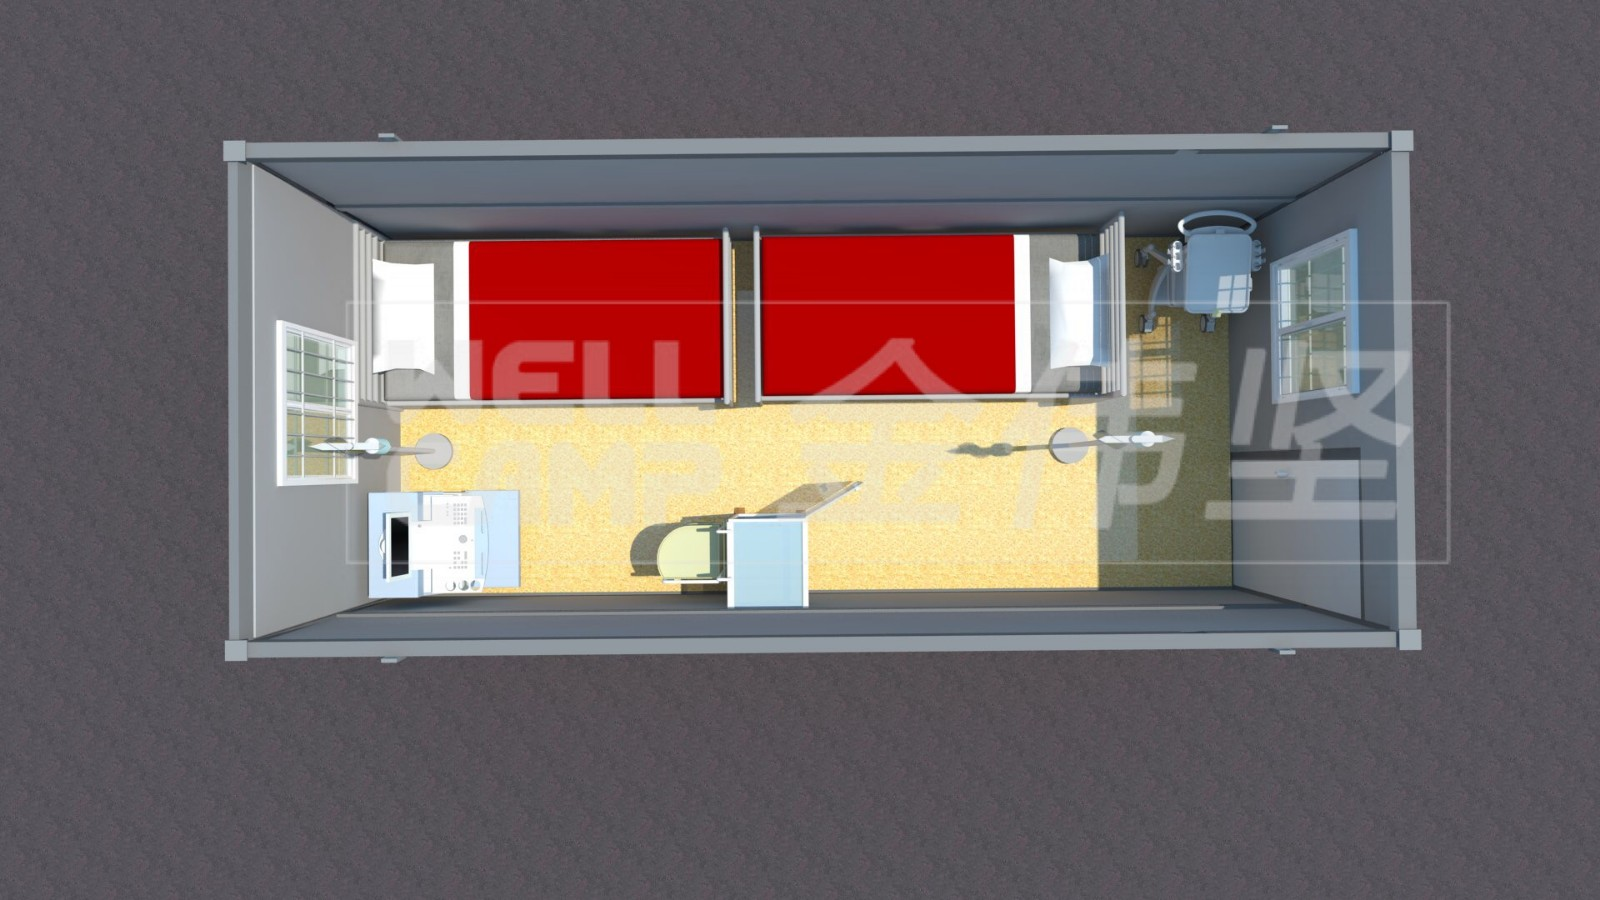 news-WELLCAMP-Three days build a hospital with flat pack container house-img